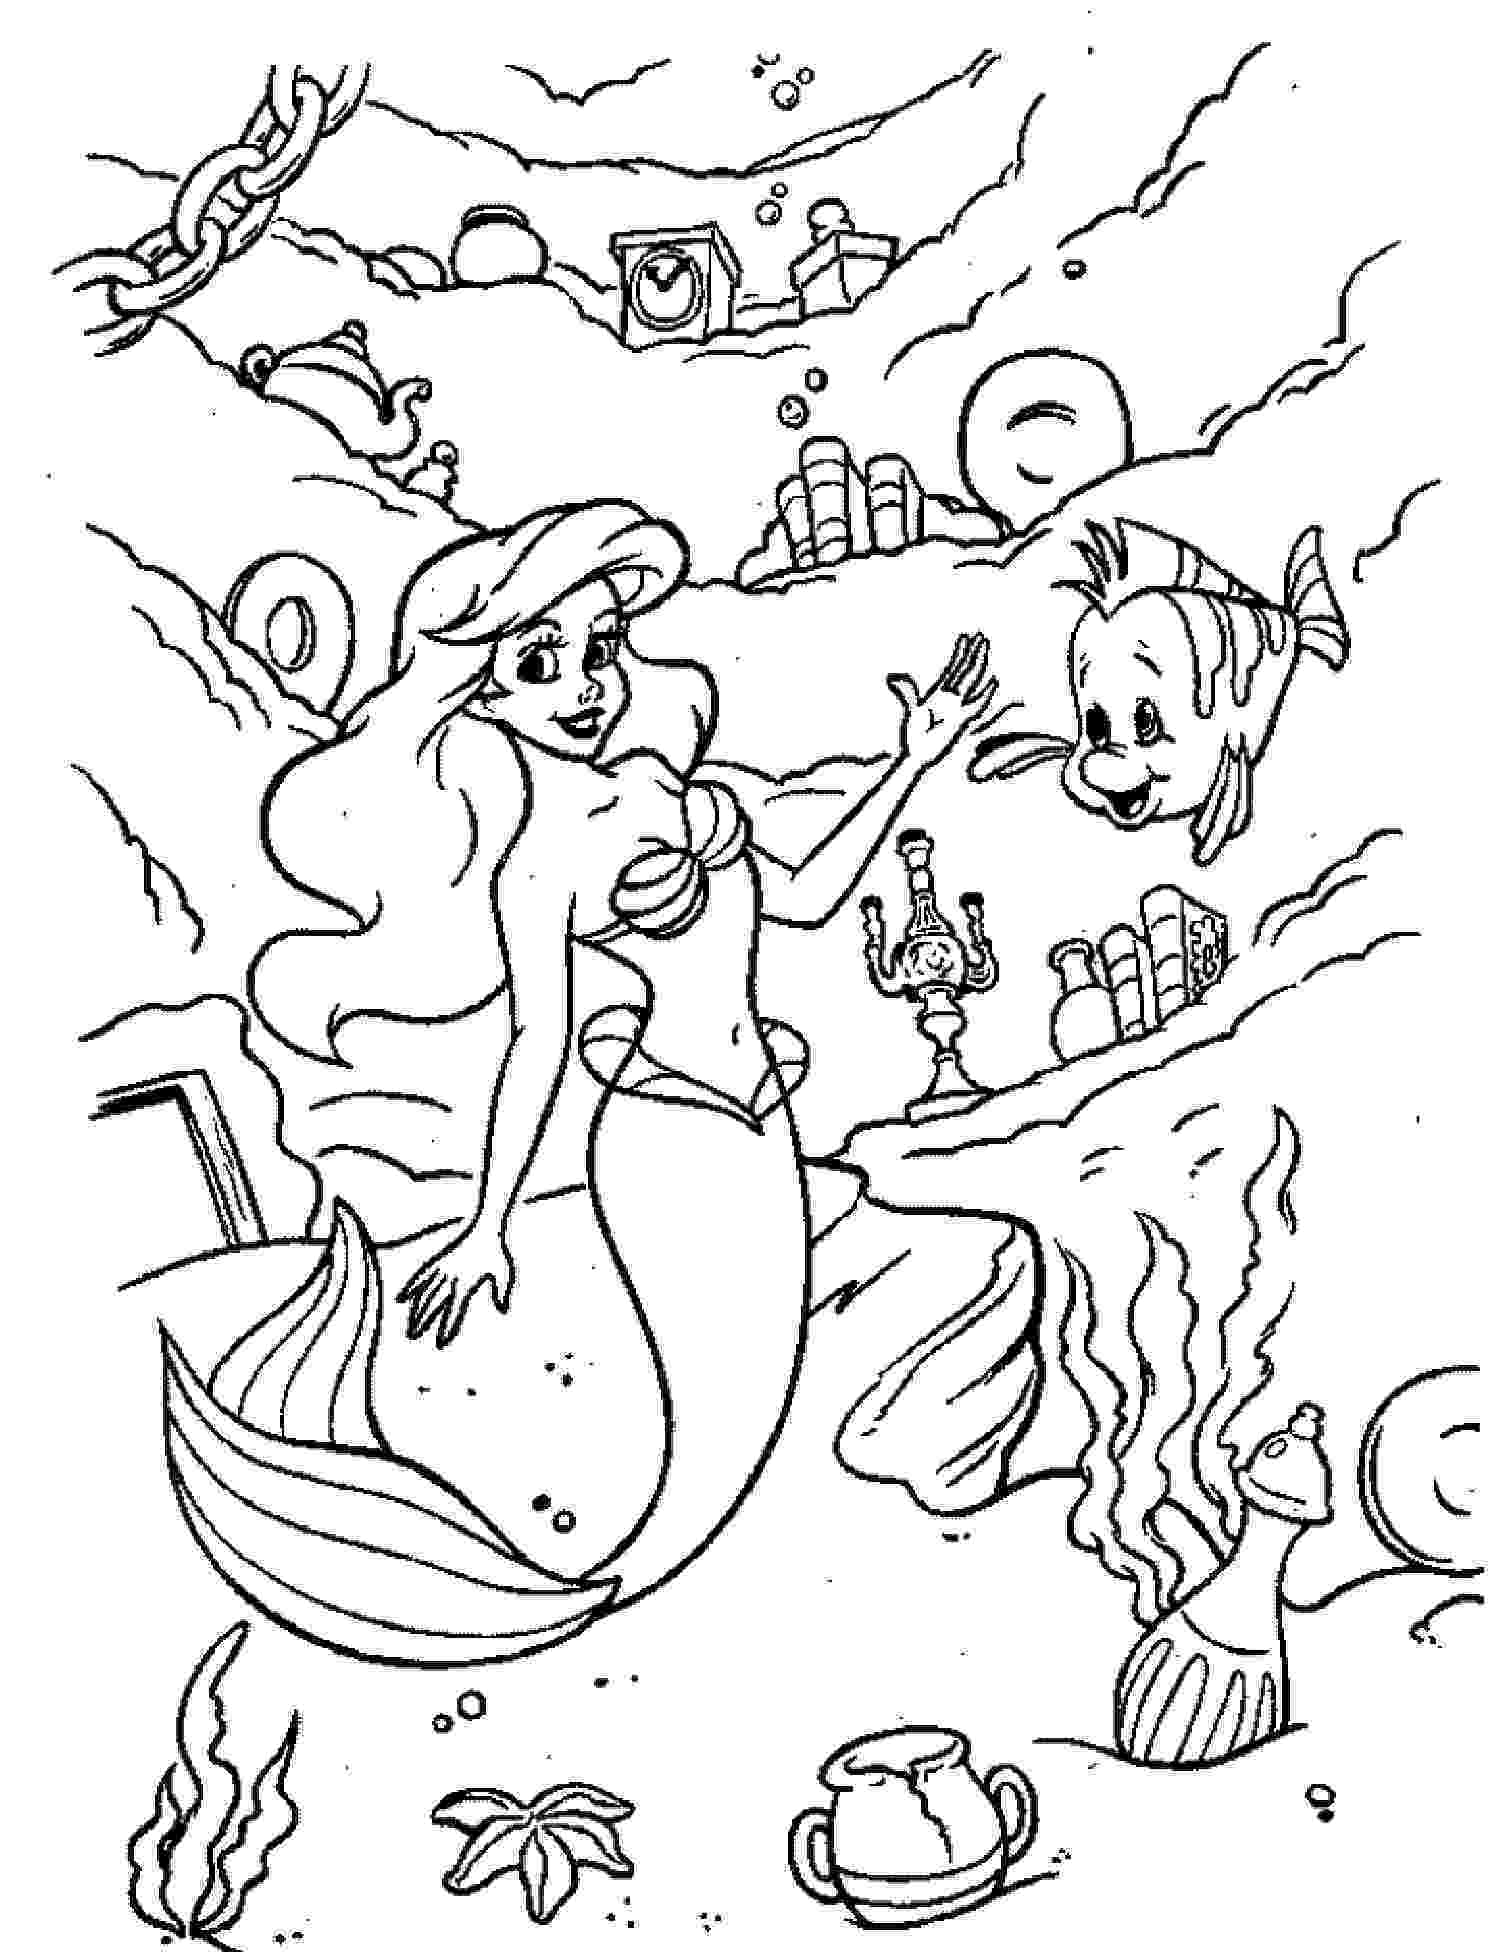 little mermaid coloring sheet little mermaid coloring pages learn to coloring sheet mermaid coloring little